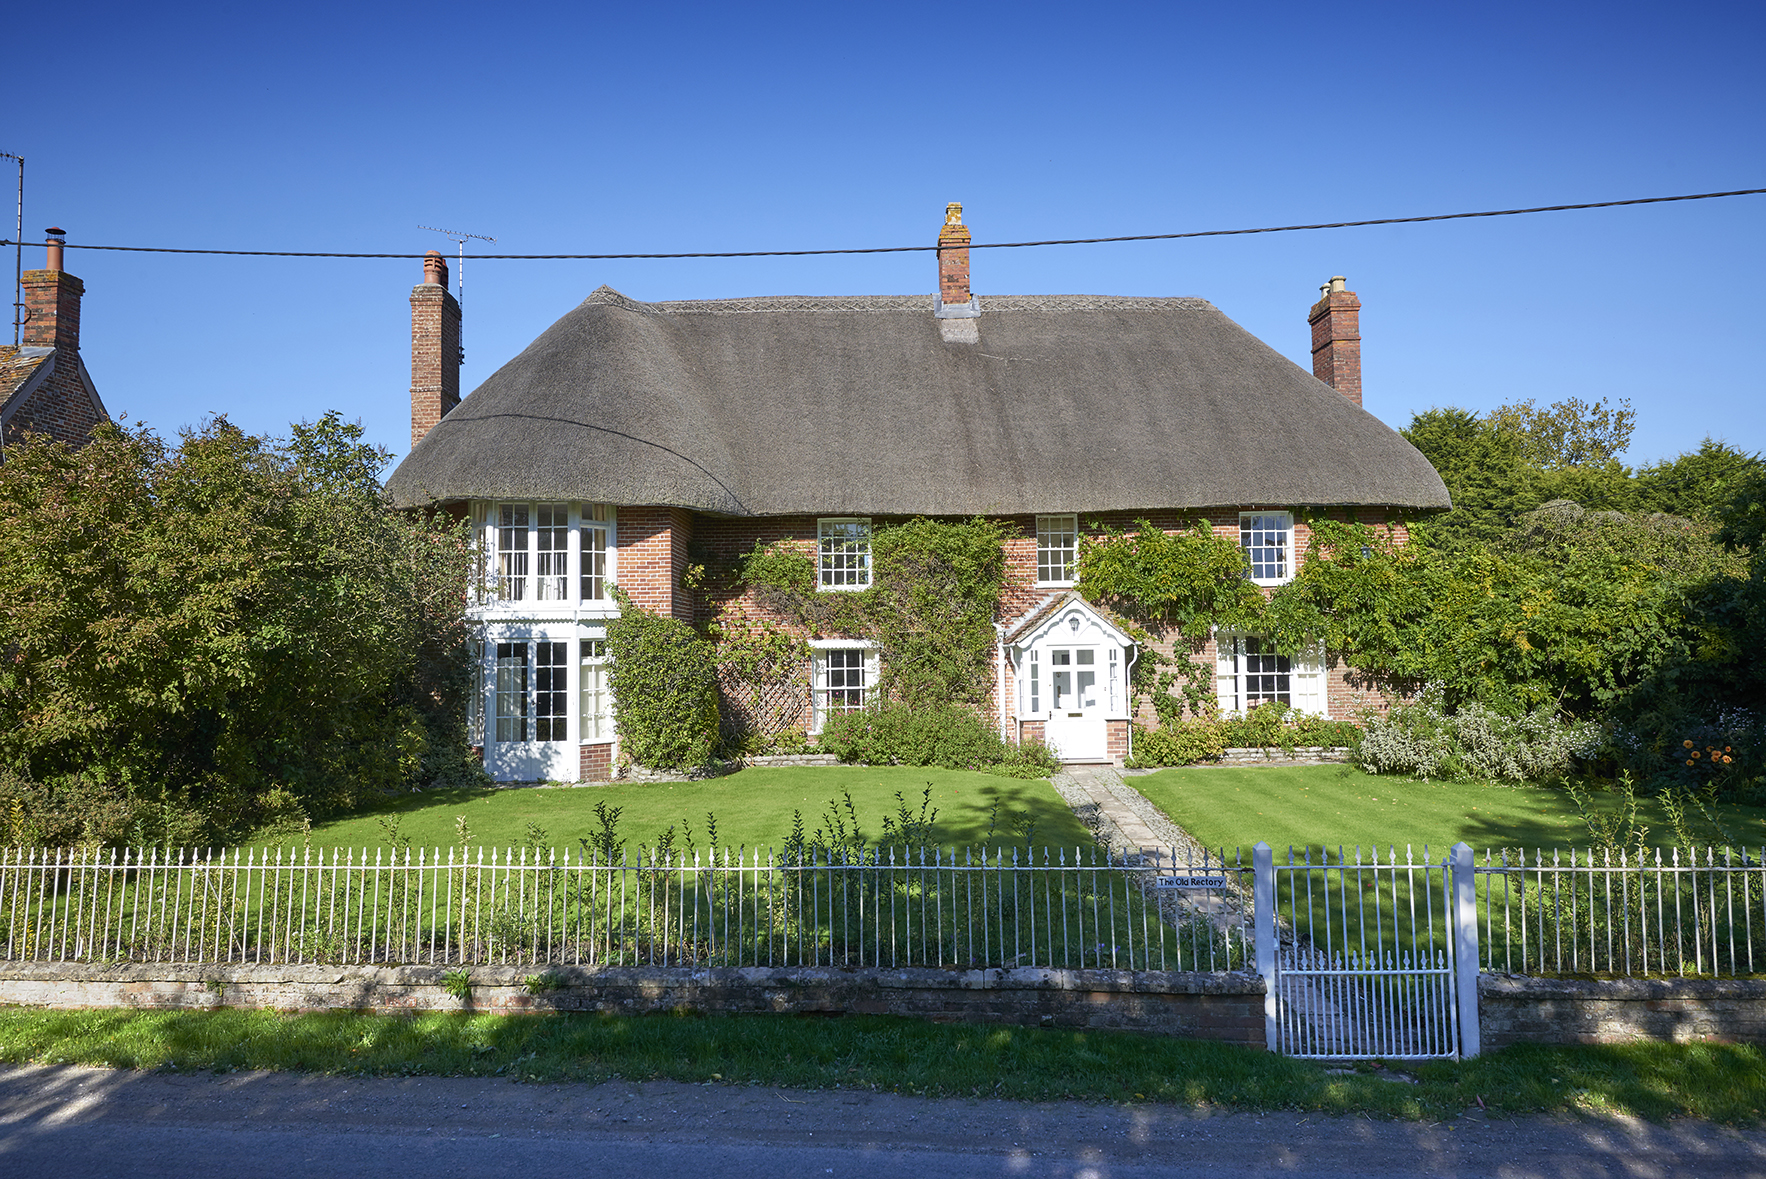 Thatched-Cottage-Alterations-Stables-Wiltshire01.jpg